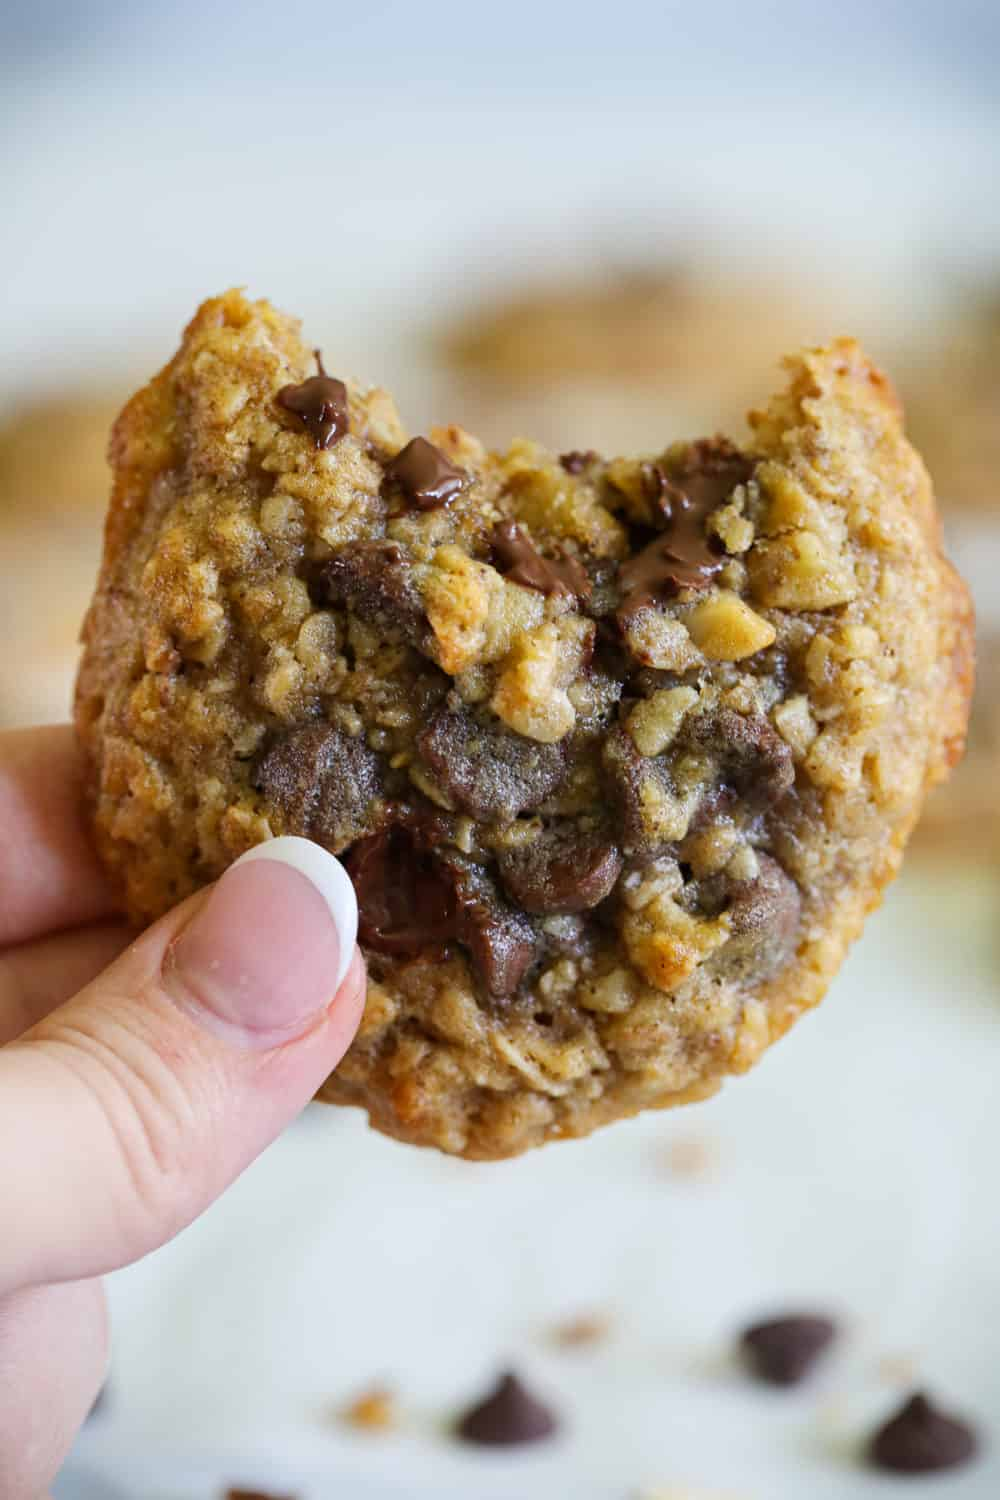 a zoomed in photo of a hand holding a bitten chewy oatmeal chocolate chip cookie